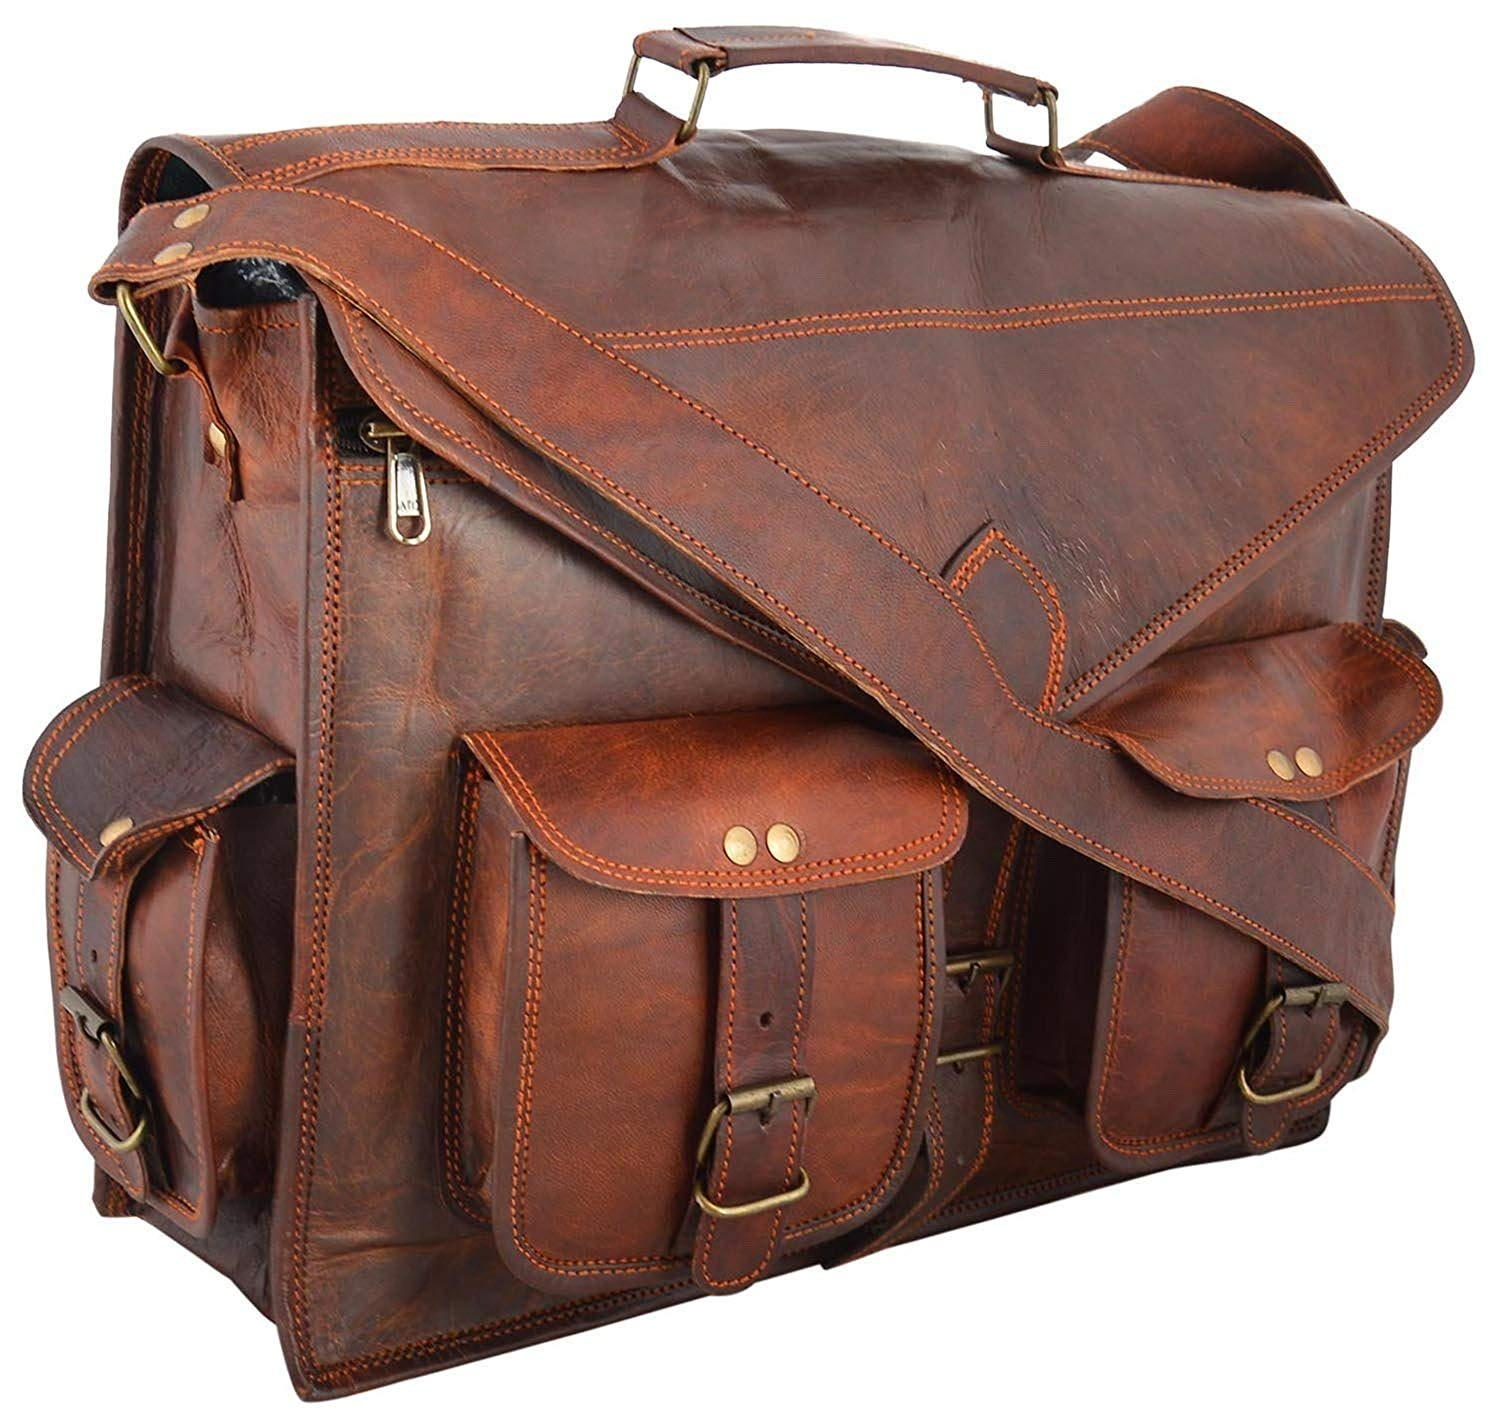 """Incredible Antique Arts 18"""" Leather Bag For Laptop Briefcase Messenger Bag 18x13x5 Brown Use for Laptop, iPad, McBook, Tablet etc"""